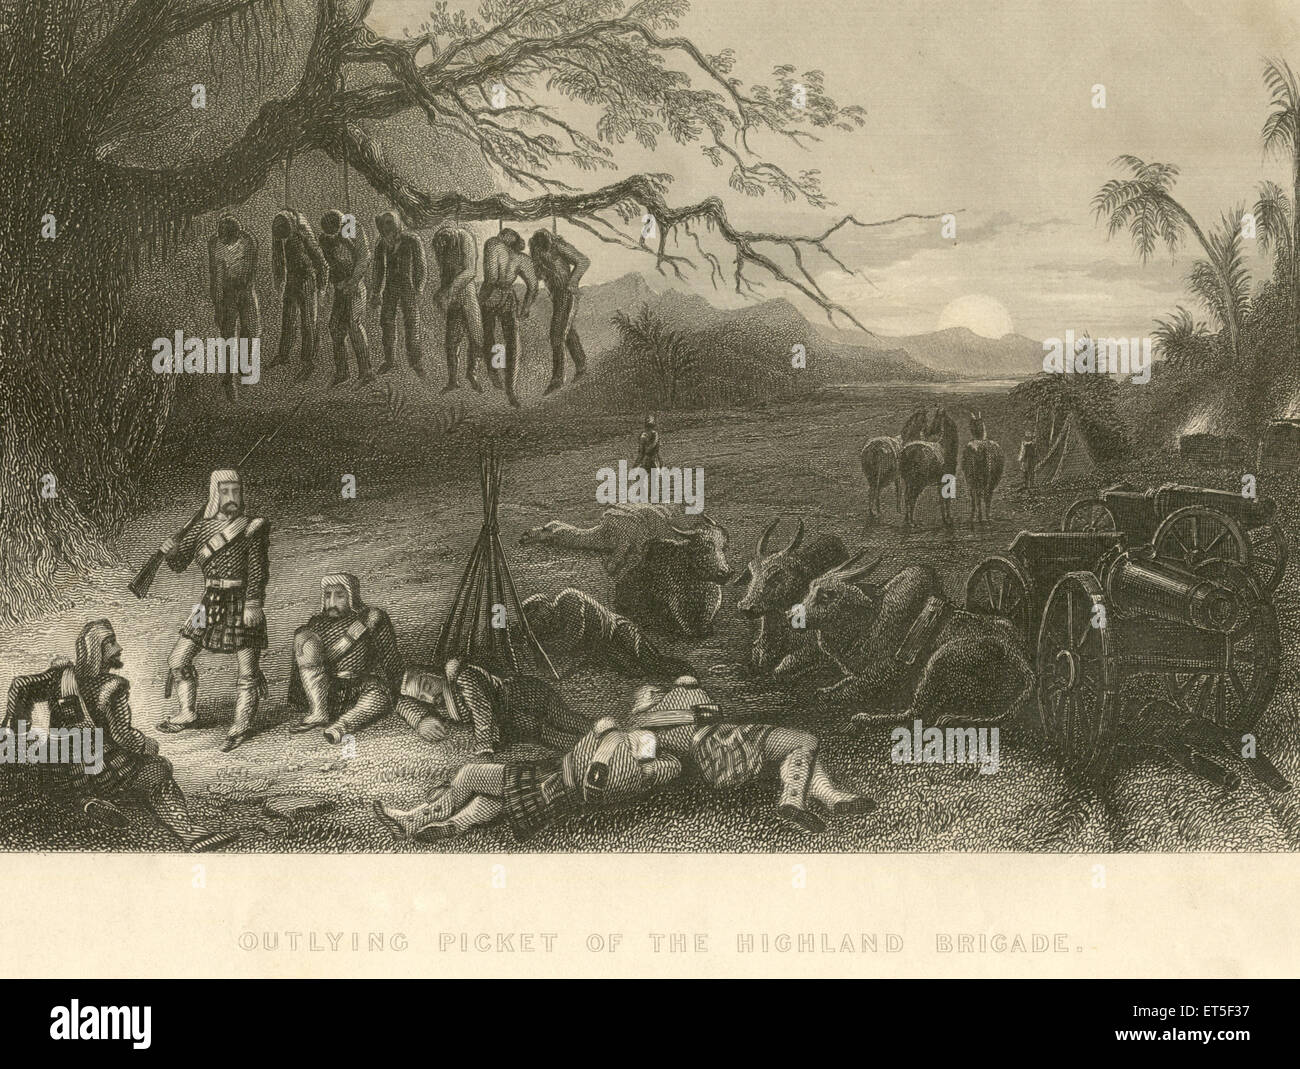 Military and munity mutiny views outlying picket of the highland brigade ; India - Stock Image